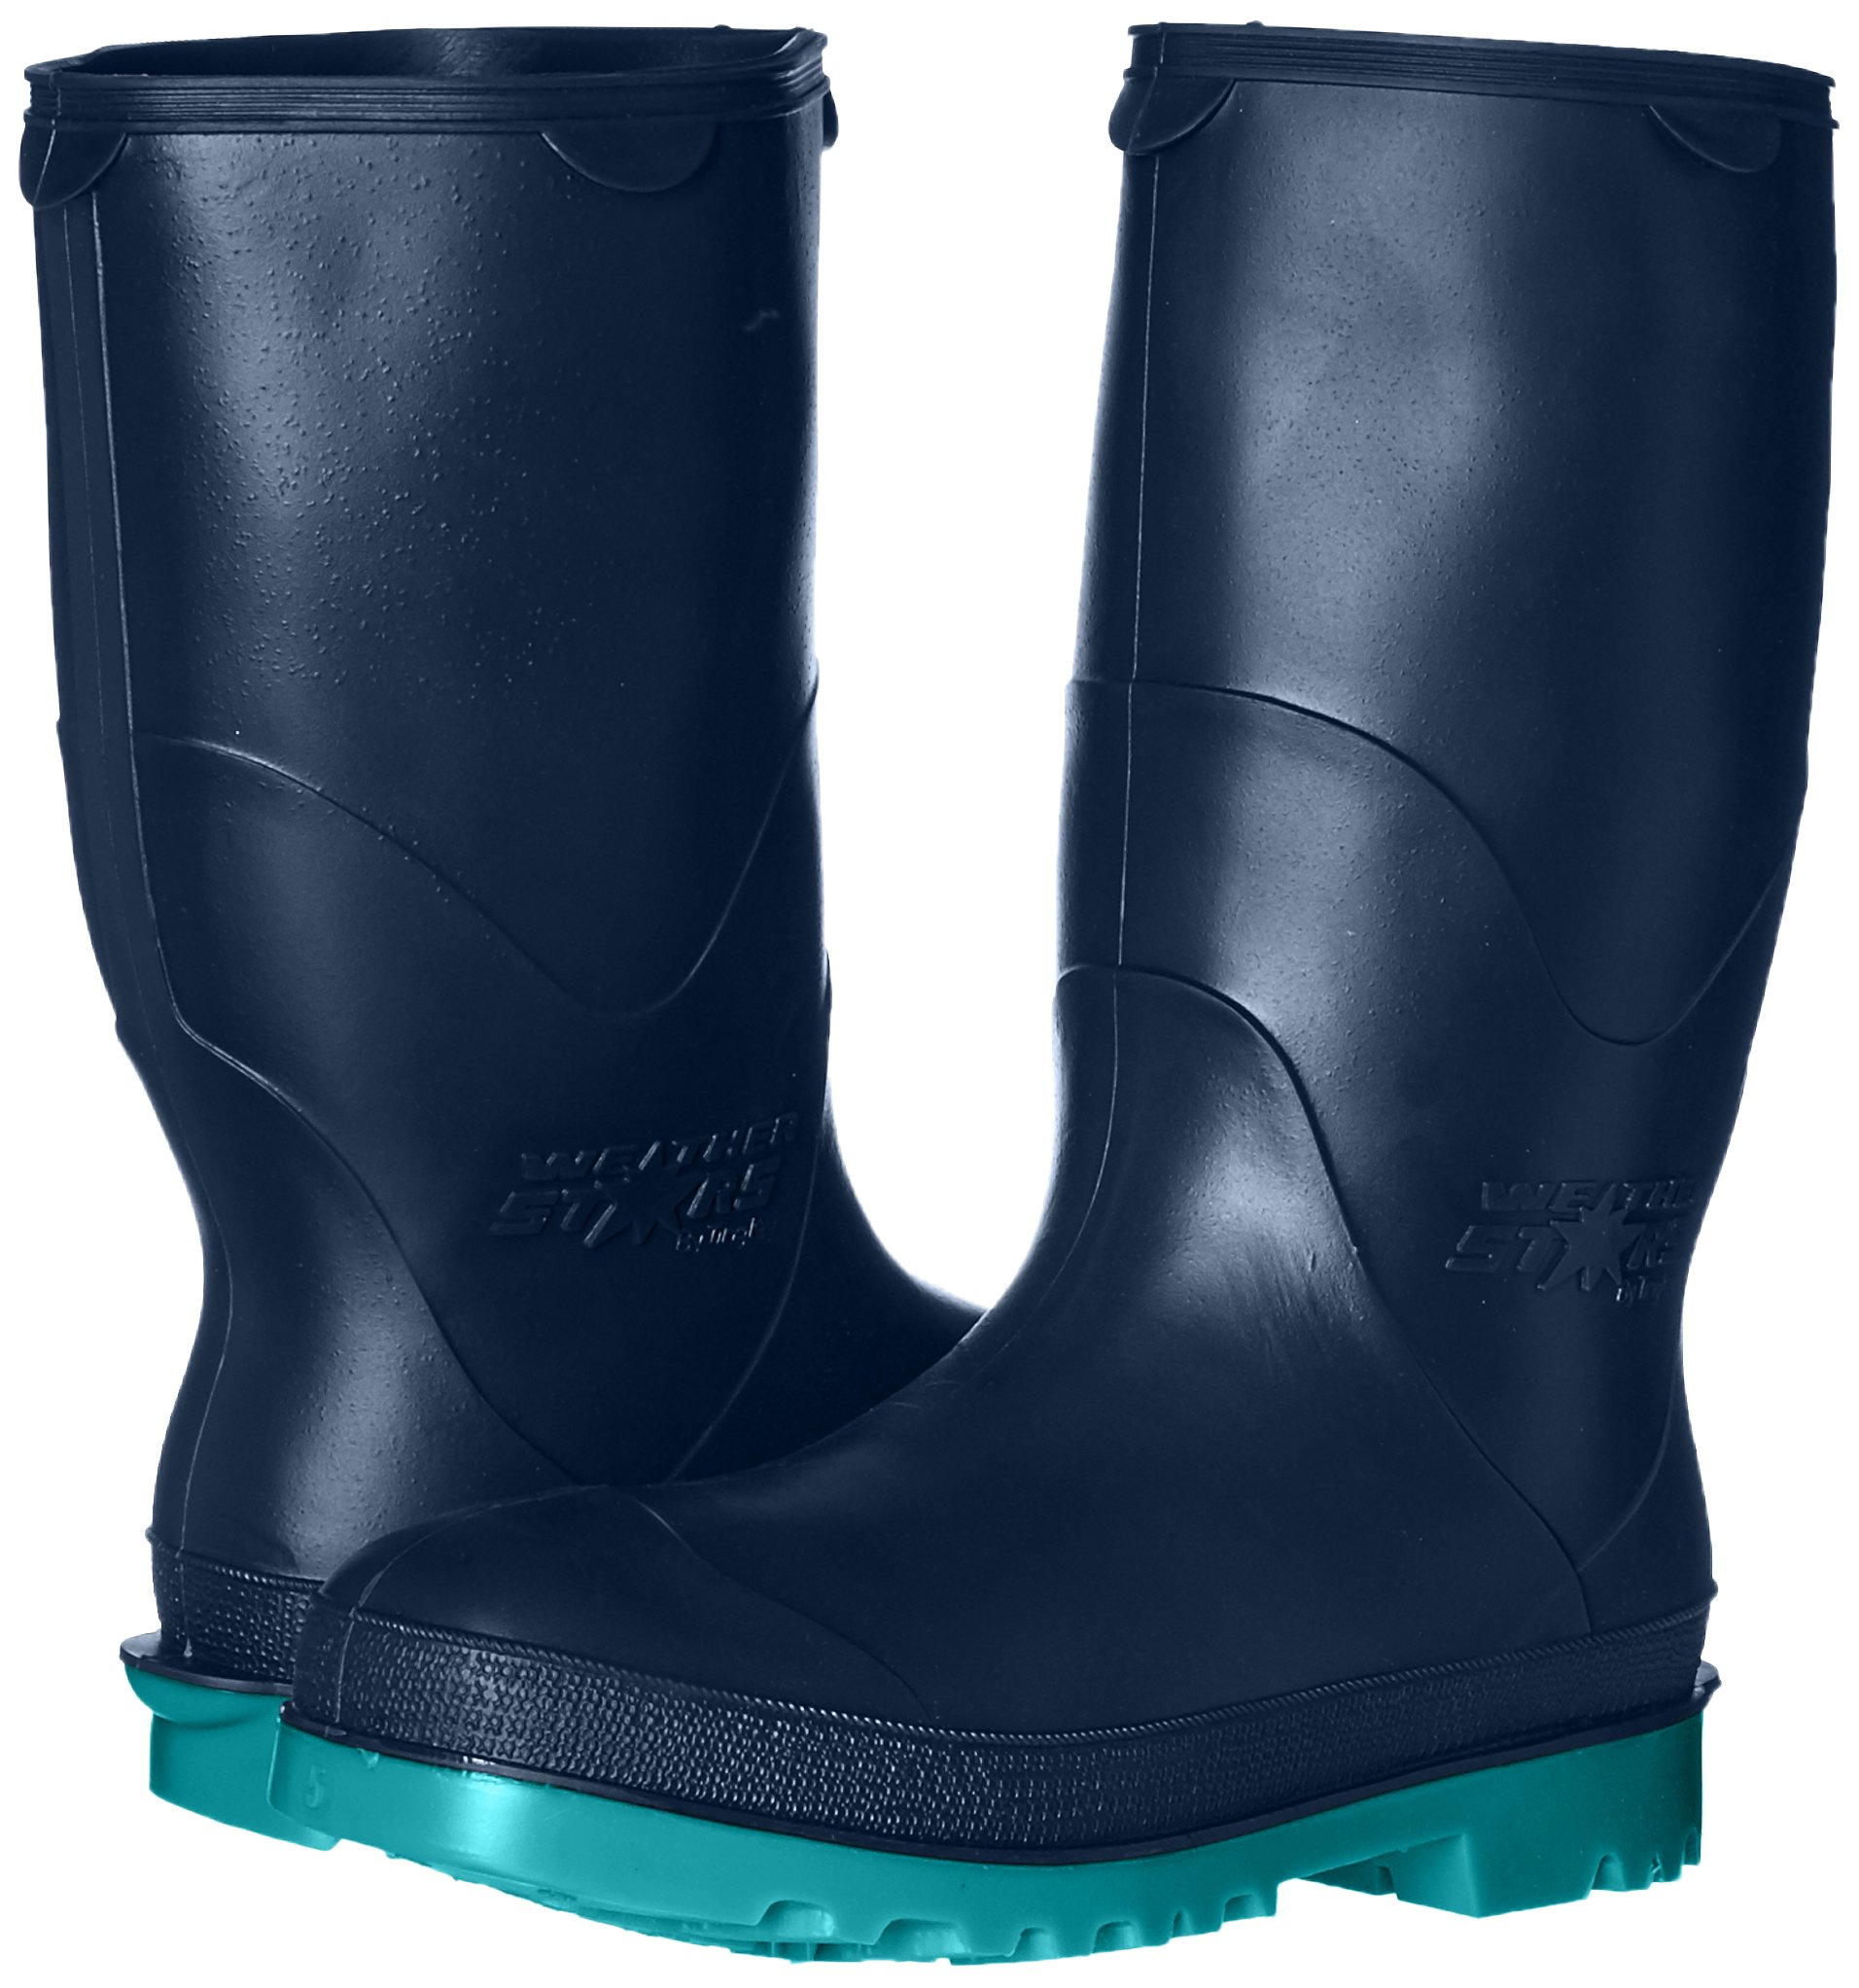 STORMTRACKS 11768.04 Youths' Boot, Size 04, Blue/Green by STORMTRACKS (Image #5)